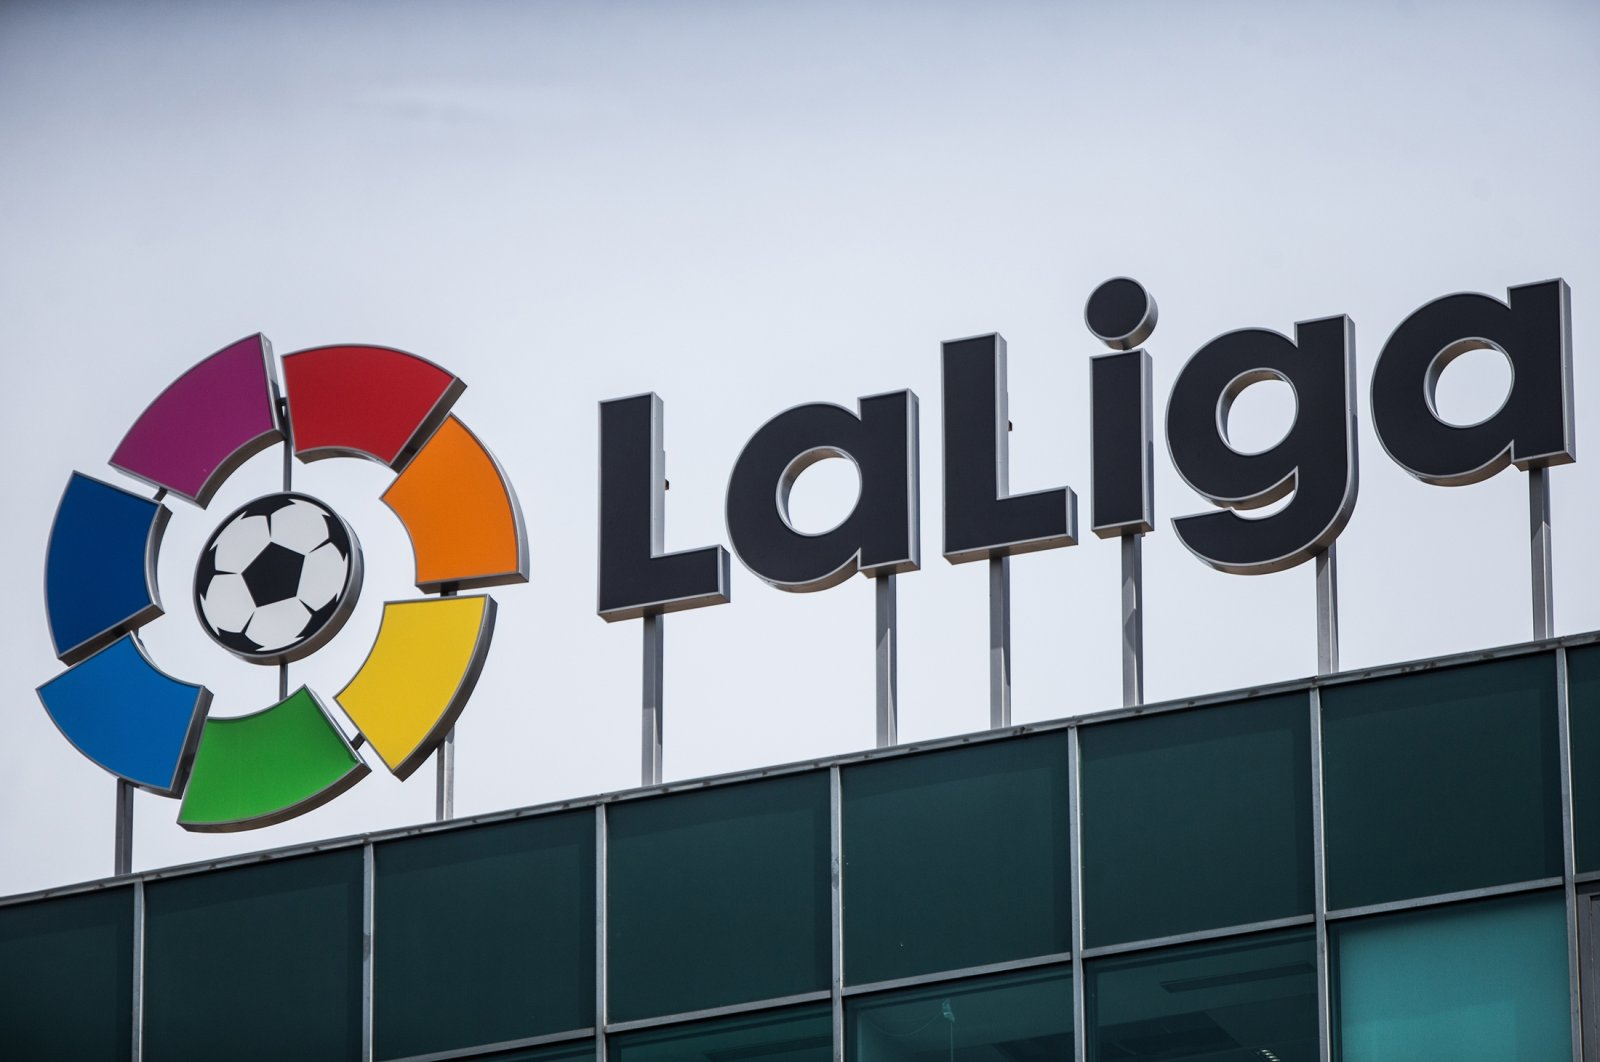 The La Liga logo is seen at the competition's headquarters inMadrid, Spain, May 5, 2020. (Getty Images)